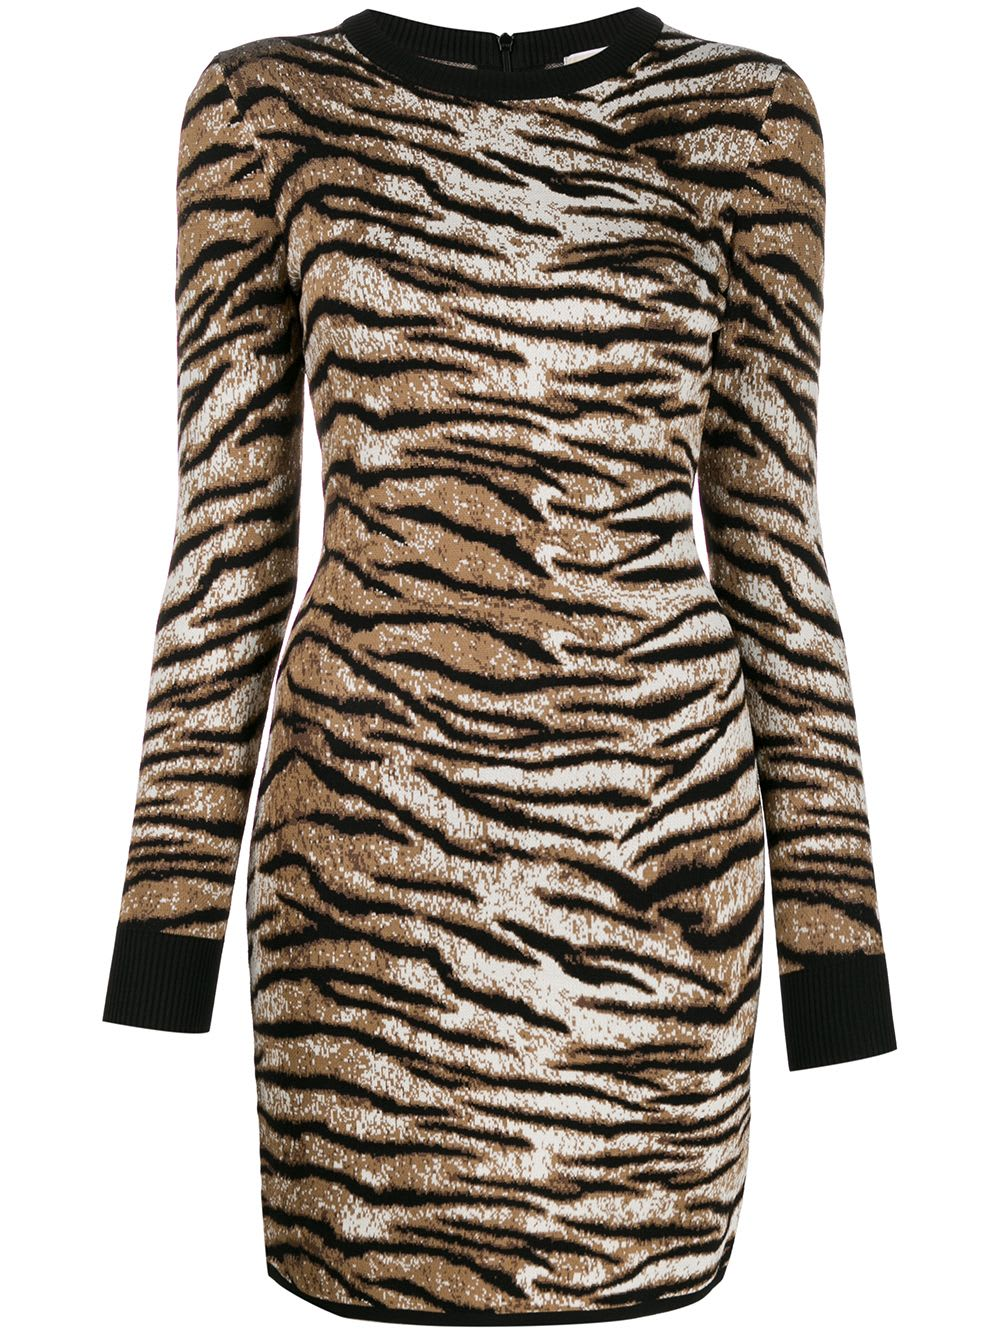 Michael Kors Animalier Dress